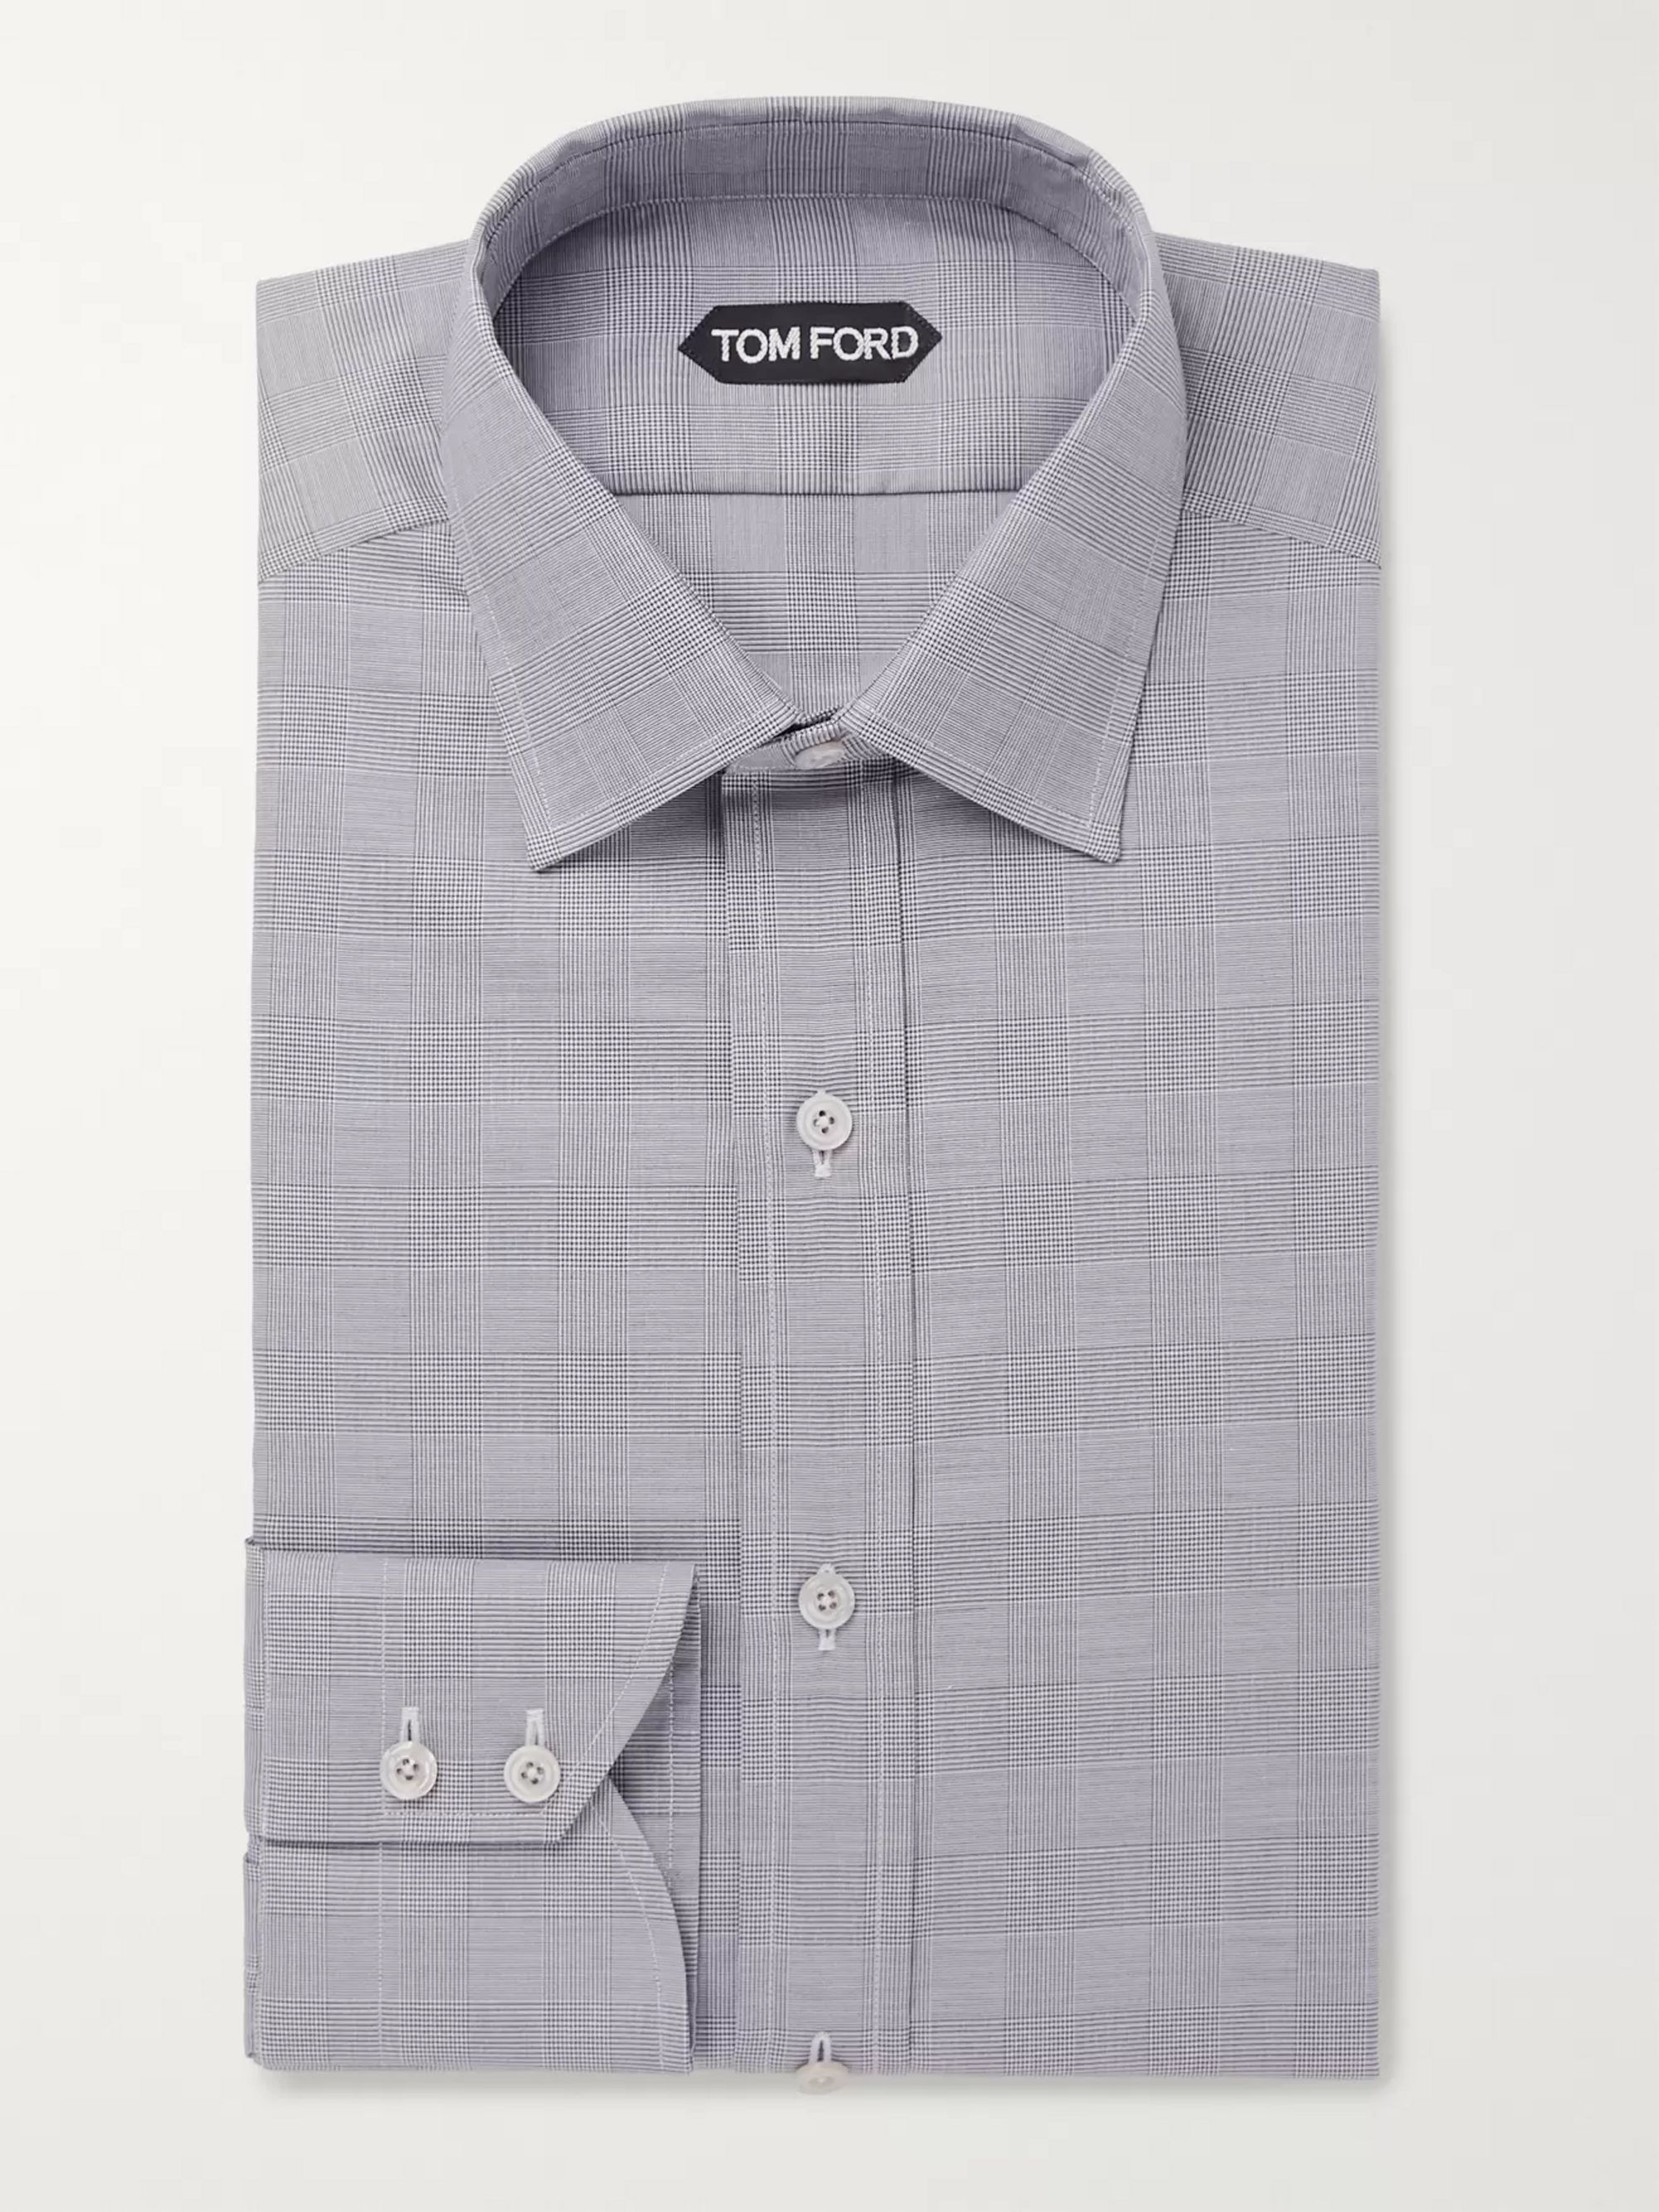 TOM FORD Grey Slim-Fit Prince Of Wales Checked Cotton Shirt